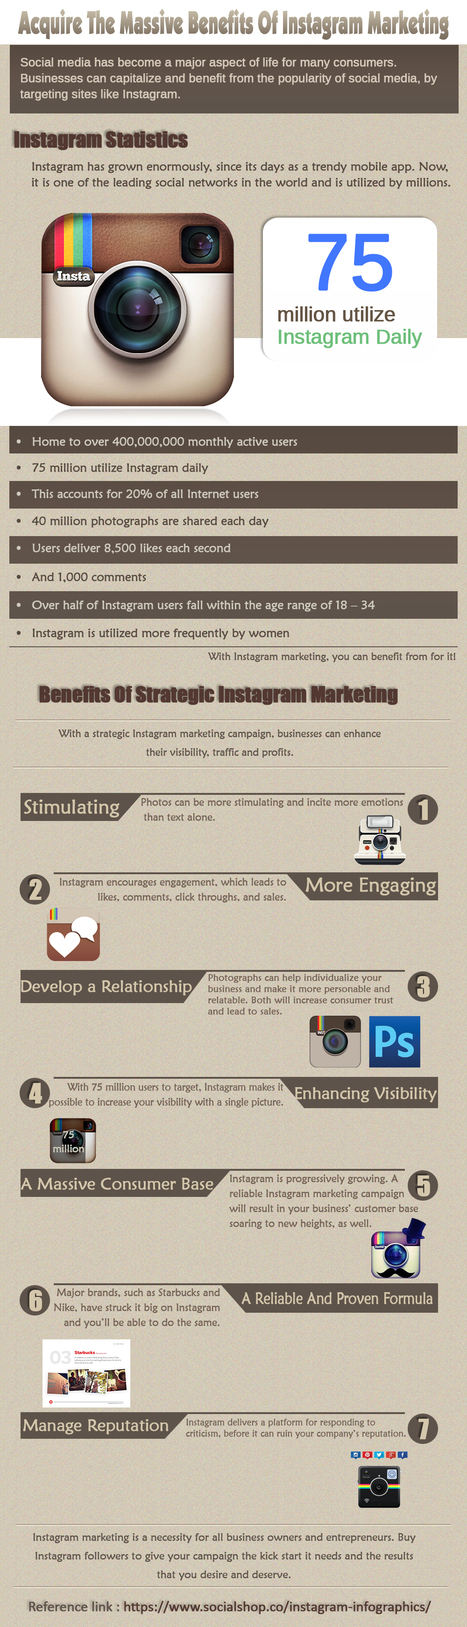 Acquire the Massive Benefits of Instagram Marketing | It is key to Happy life | Scoop.it